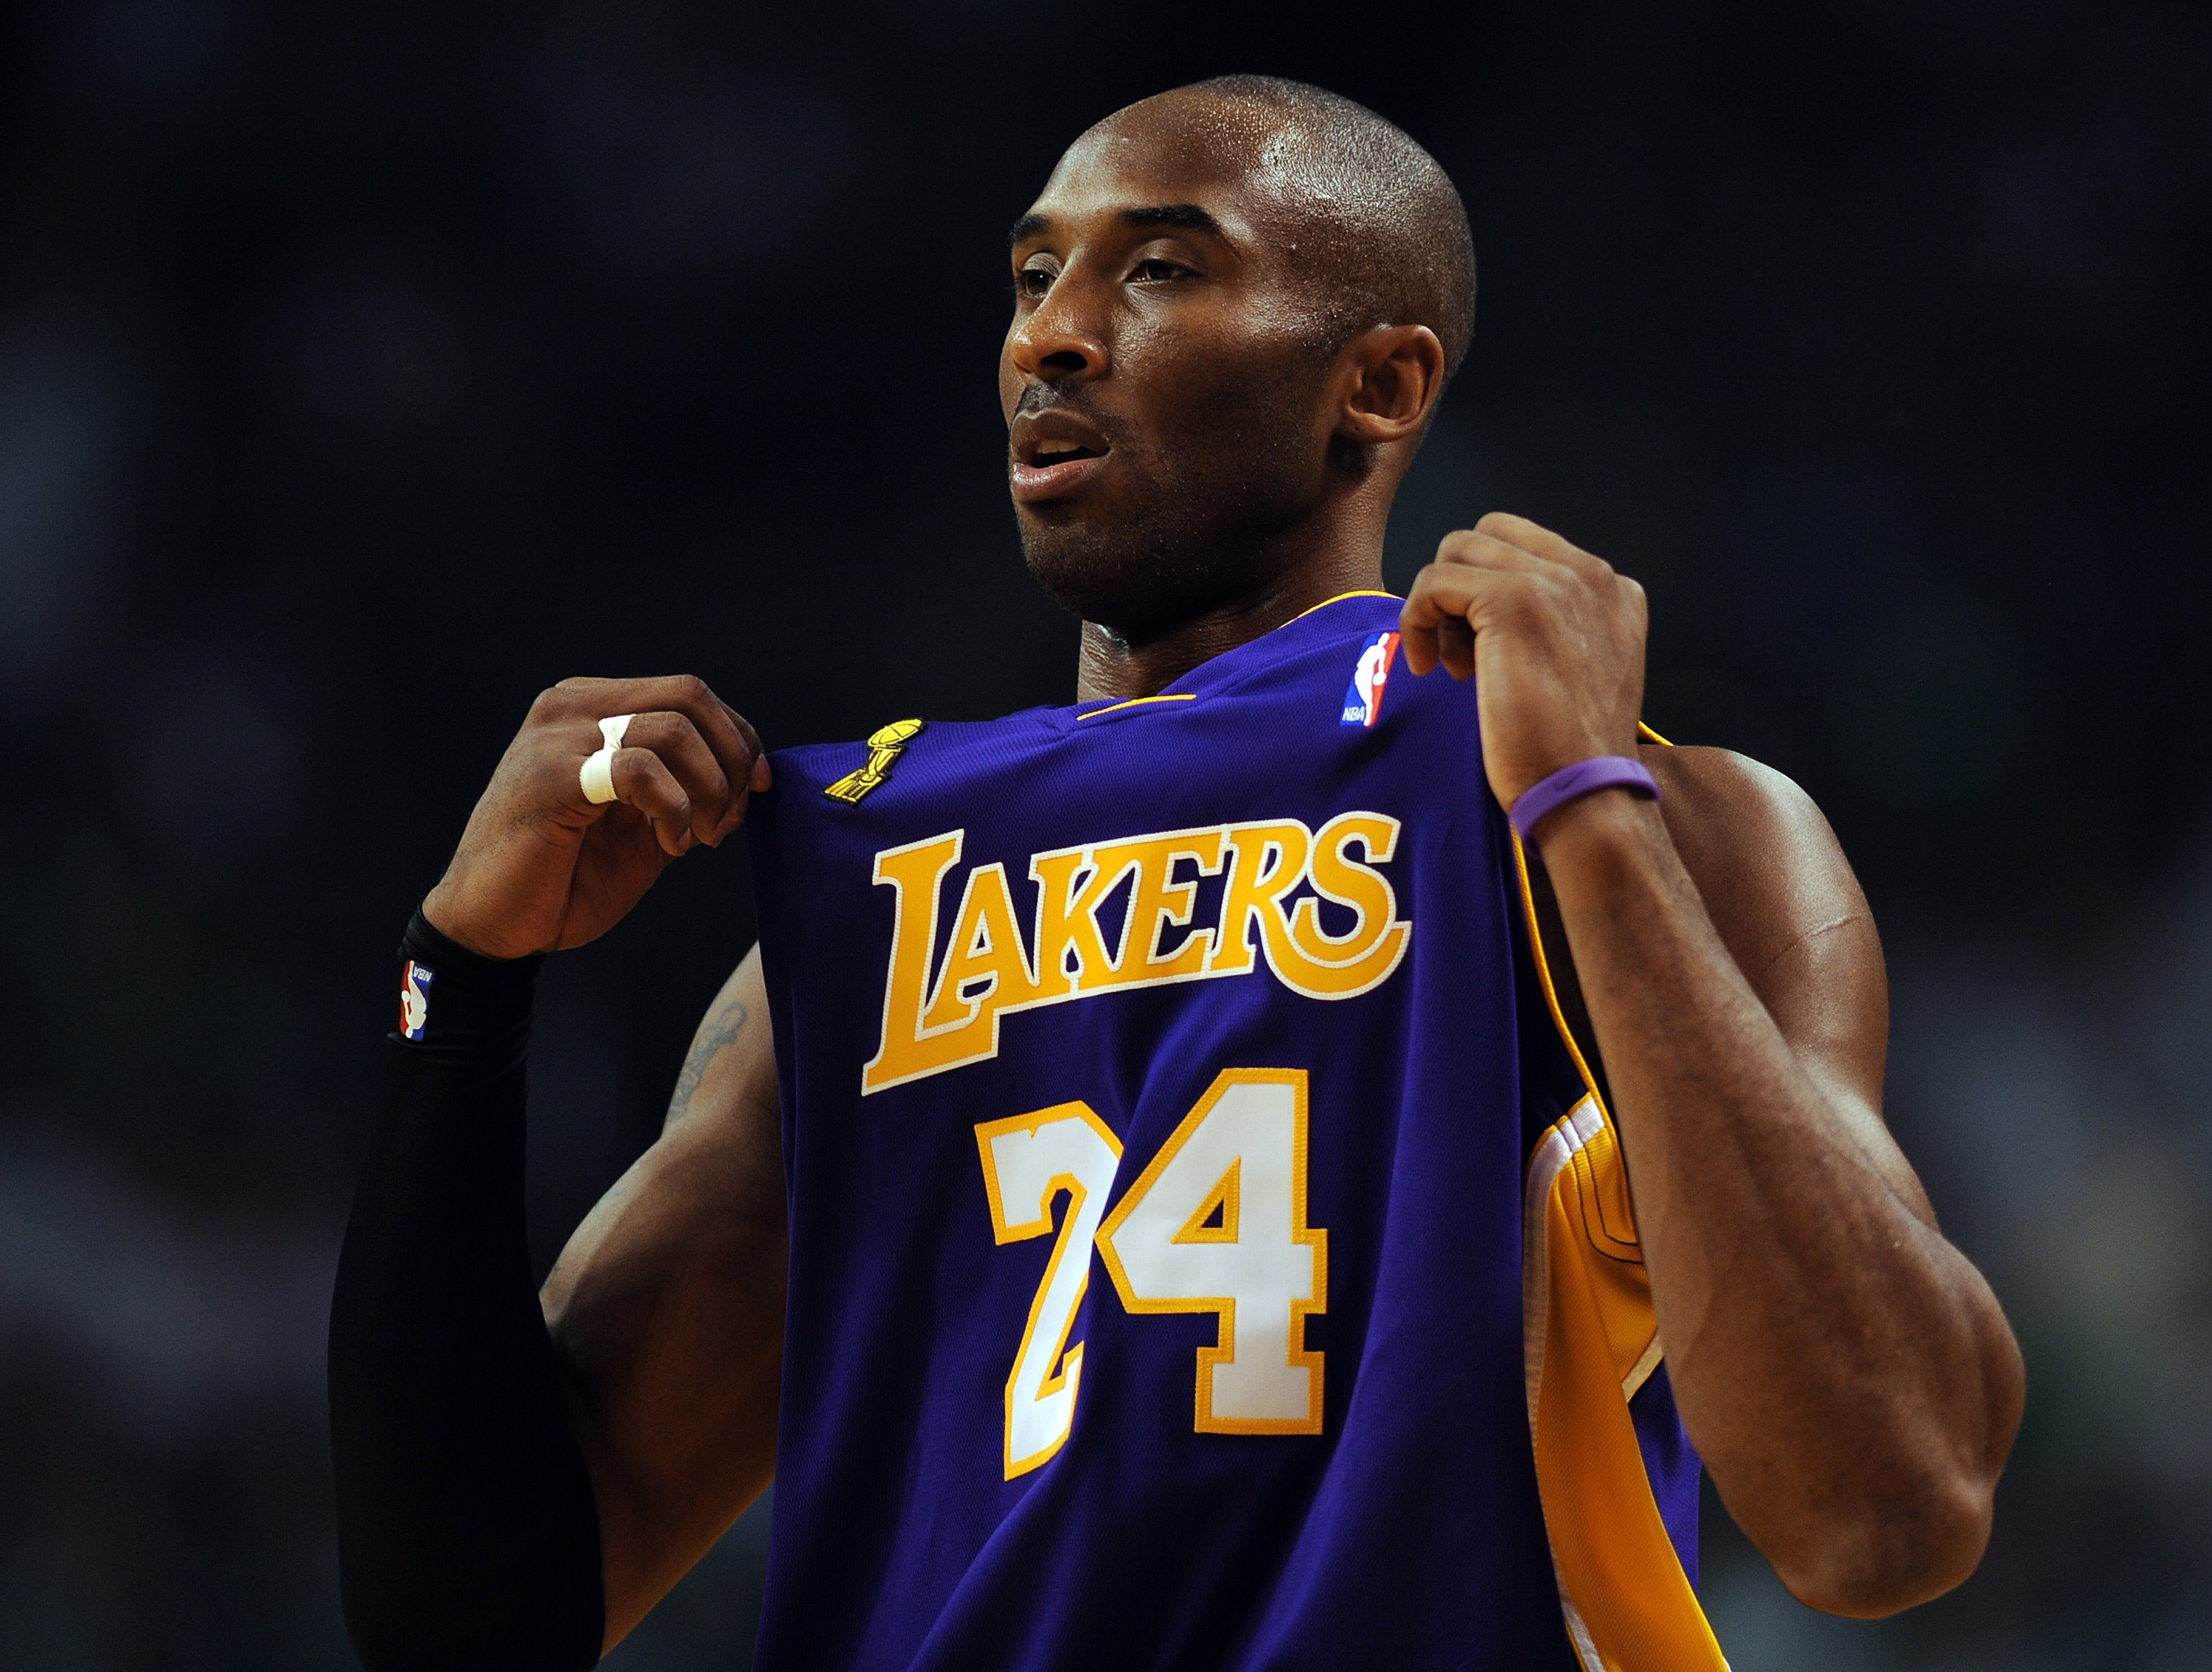 Kobe Bryant Reportedly Died in Helicopter Crash in California